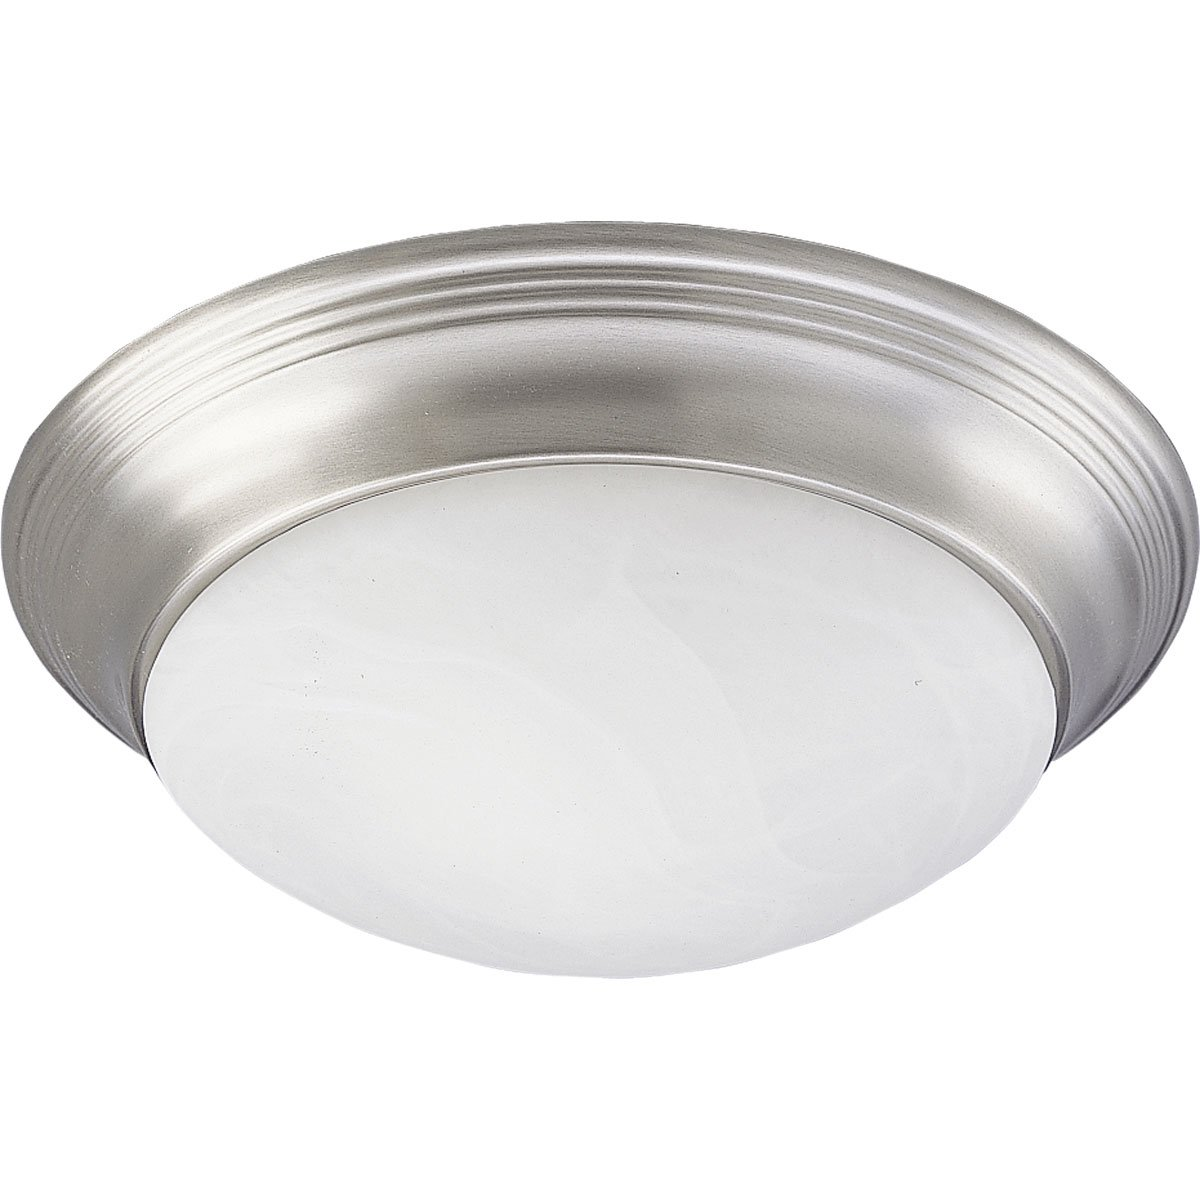 Progress Lighting P3688-09 Alabaster Glass One-Light Close-To-Ceiling, Brushed Nickel, 11-1/2'' x 3-3/4''